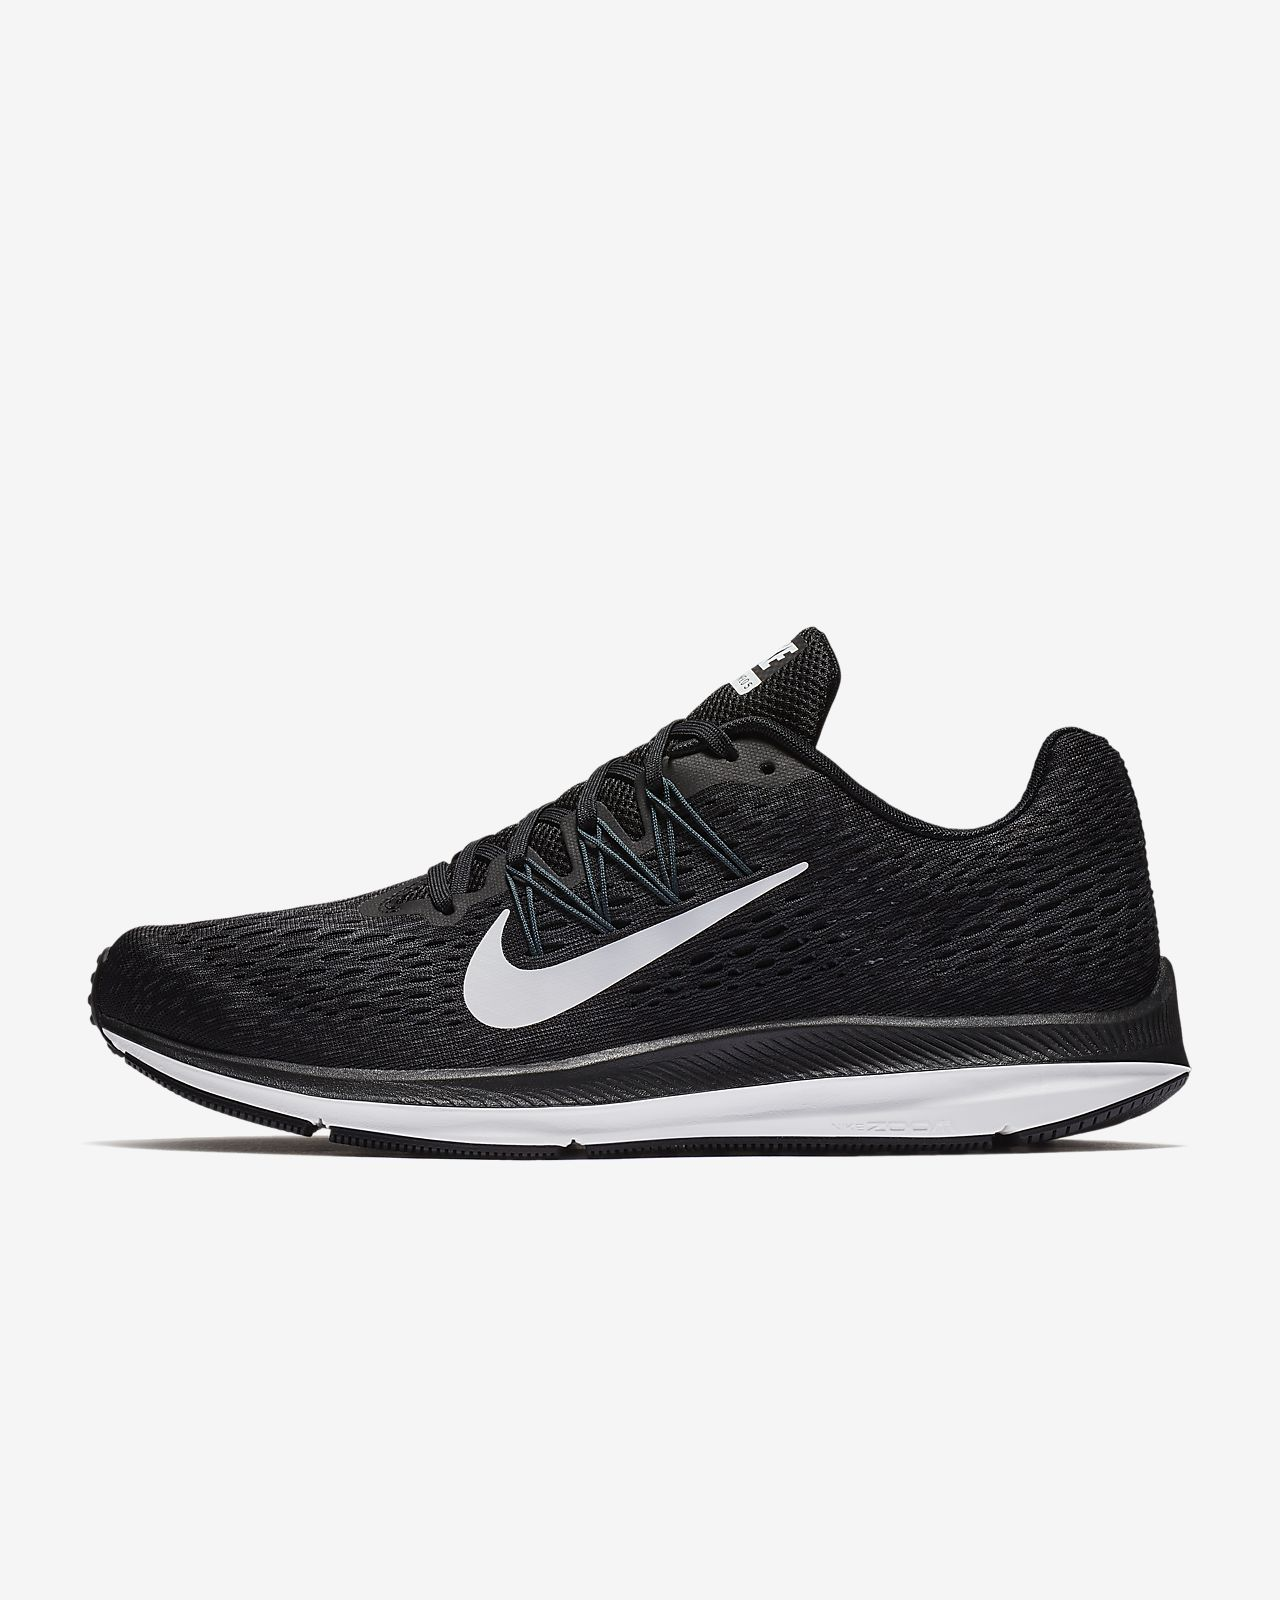 big sale bfa8c cb85f ... Chaussure de running Nike Air Zoom Winflo 5 pour Homme